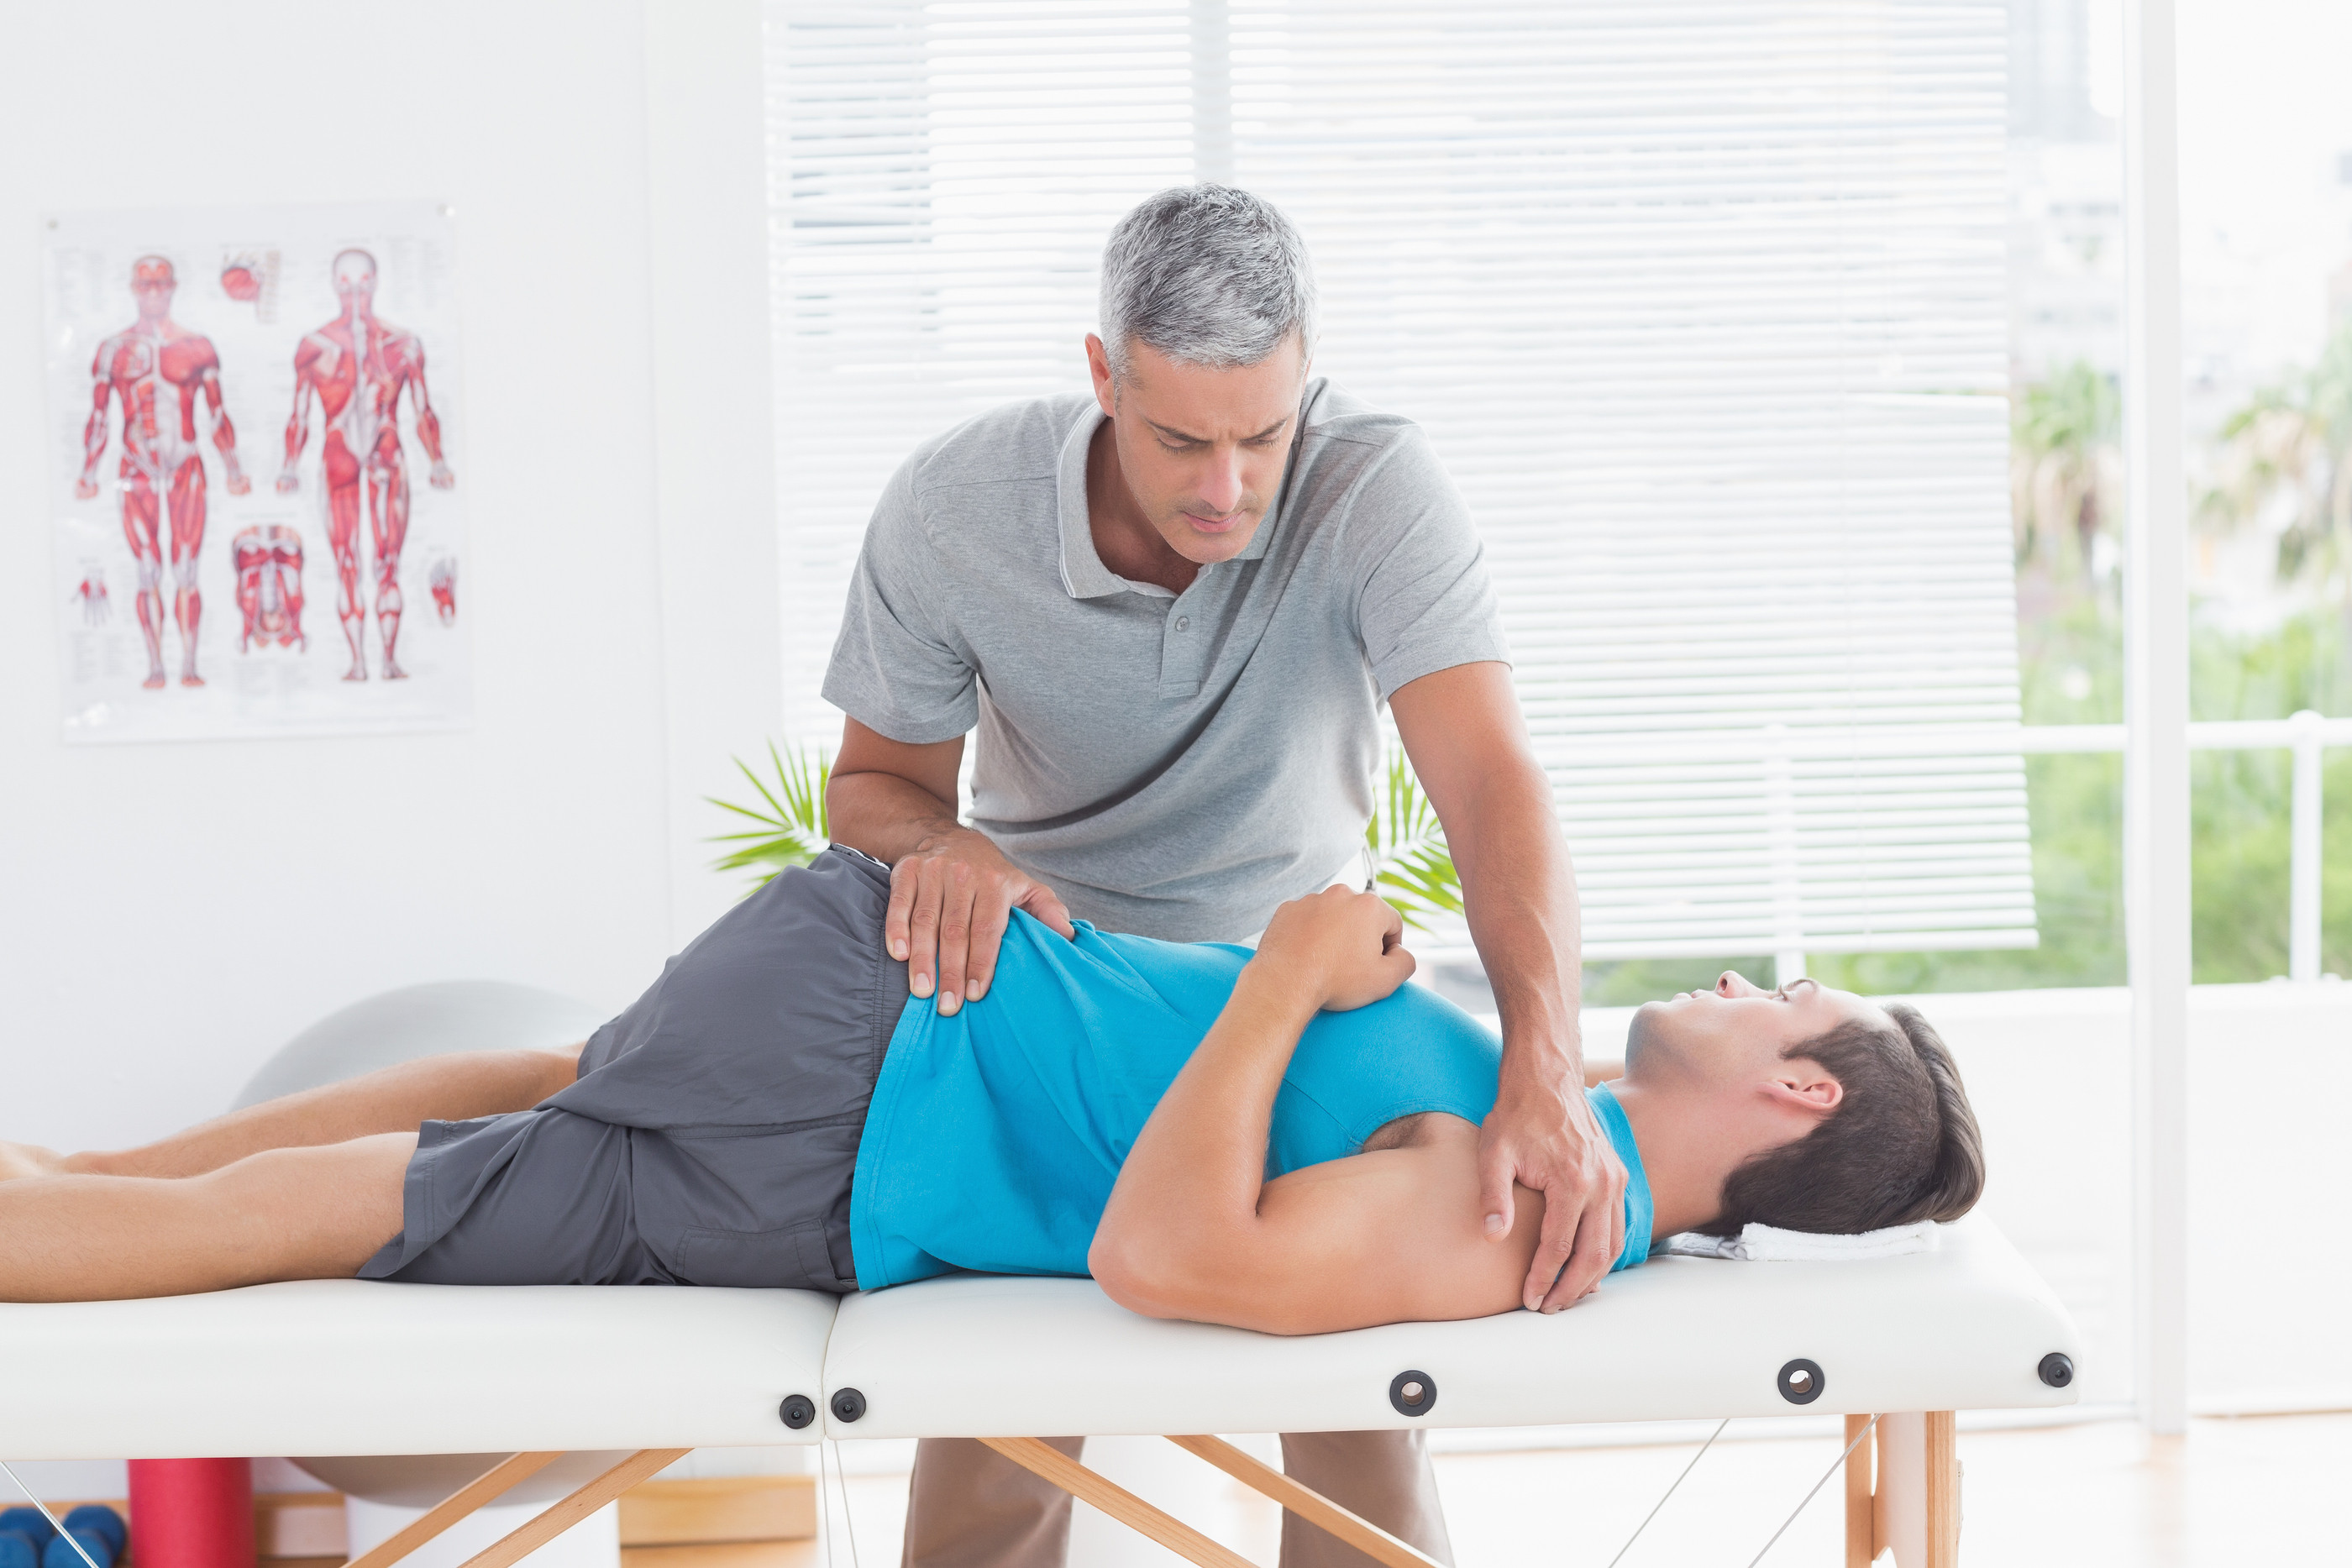 bigstock-physical-therapist-stretching-lower-back-man-85571219